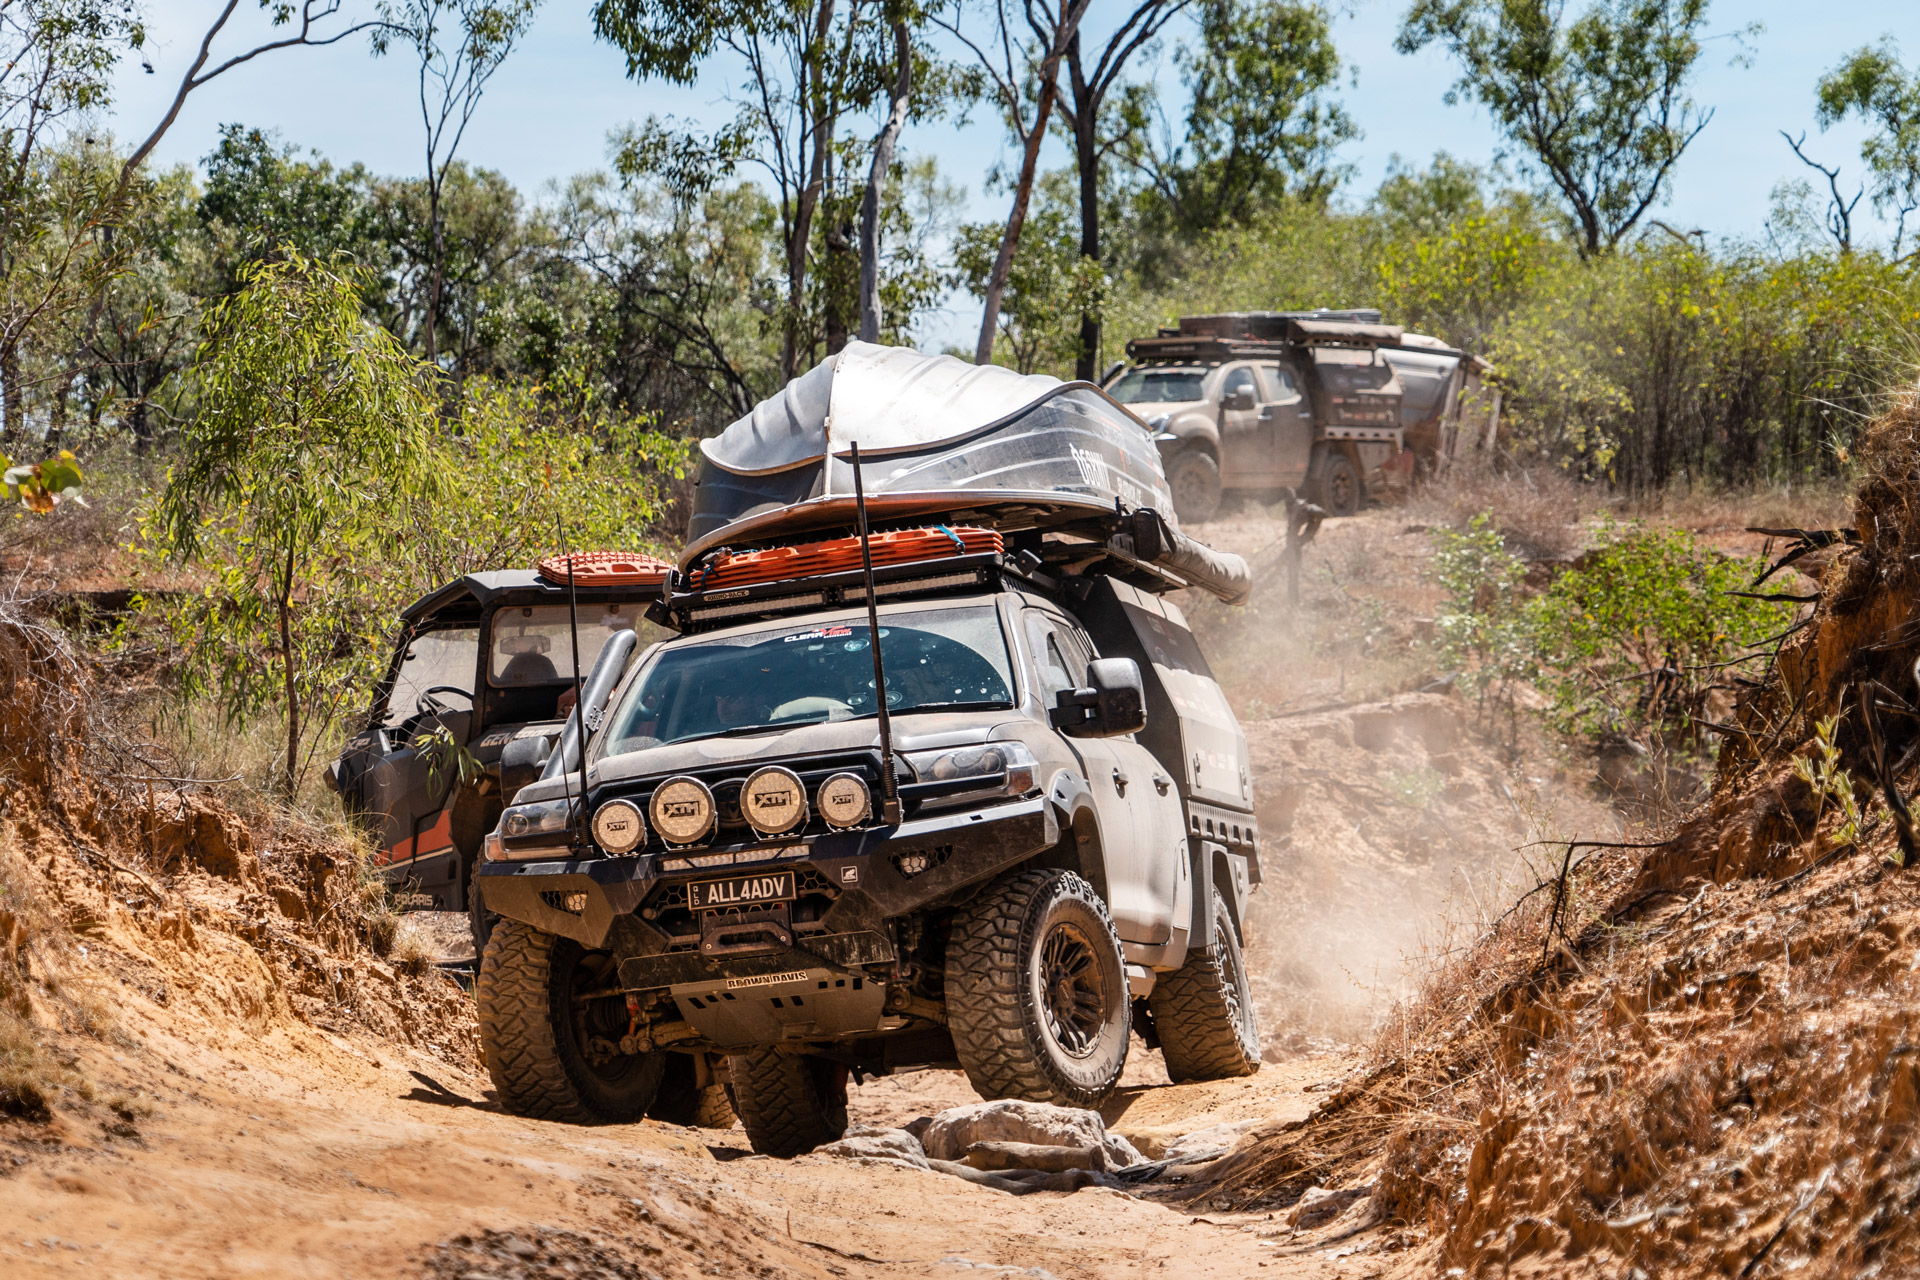 All 4 Adventure LandCruiser offroading with Vapour wheels